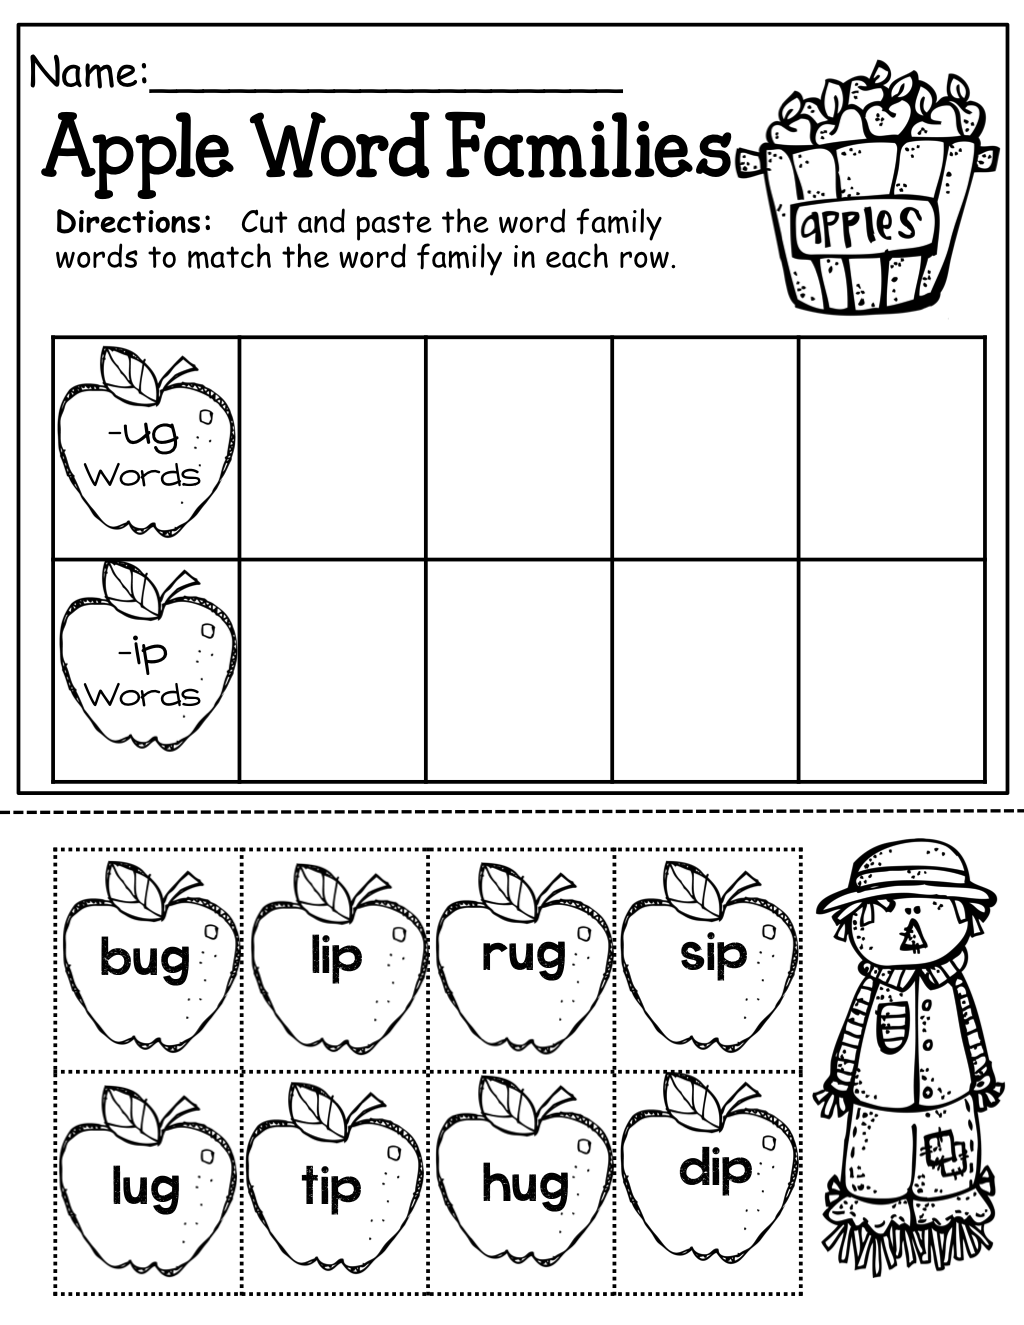 Apple Word Families With Simple Cvc Words